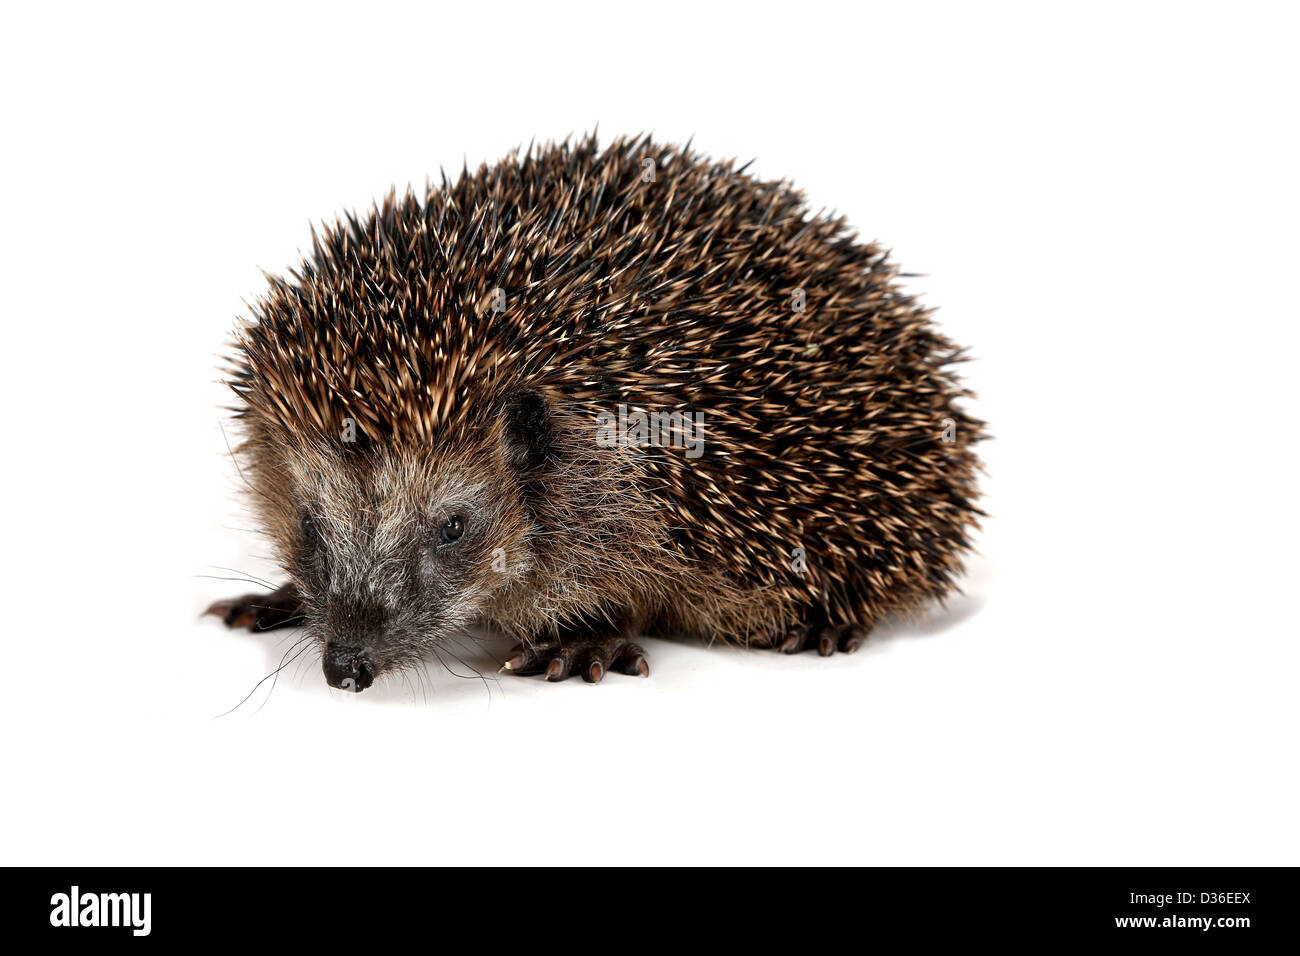 Adorable hedgehog standing and looking at the beholder - Stock Image